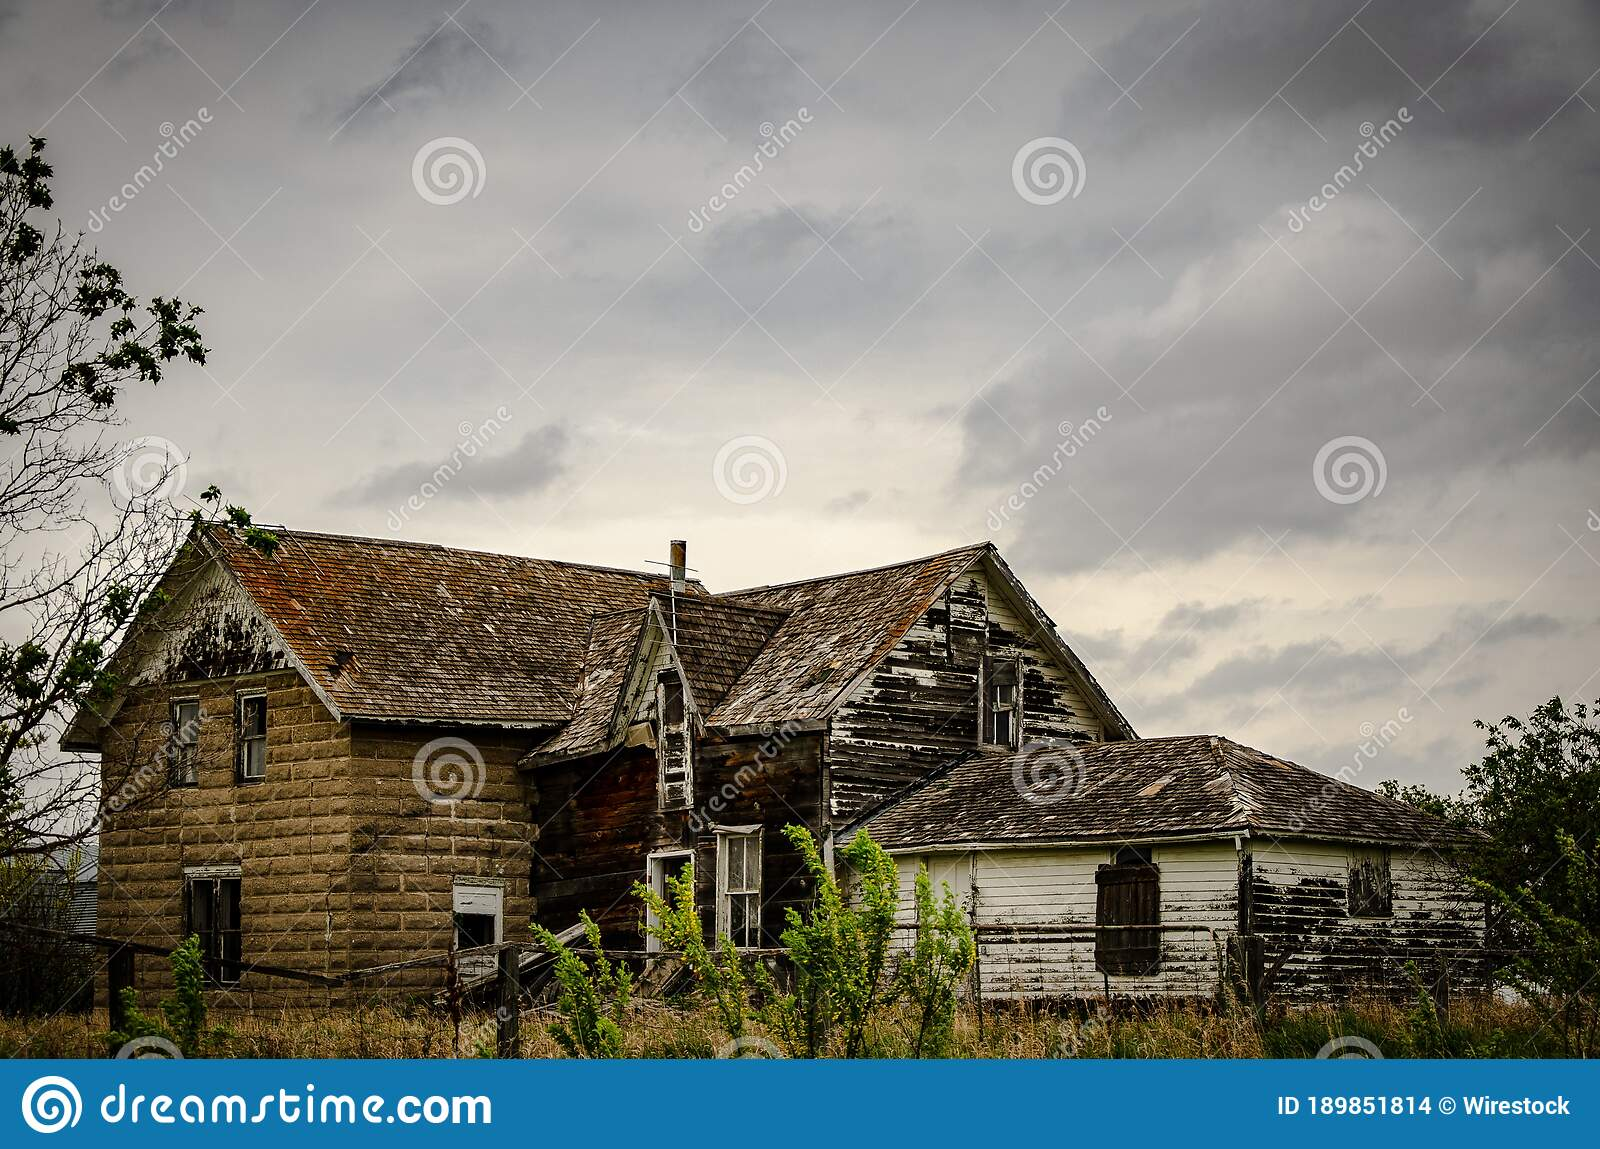 Creepy Old And Aged Abandoned House In A Field Under The Cloudy And Rainy Sky Stock Photo Image Of Field Haunted 189851814